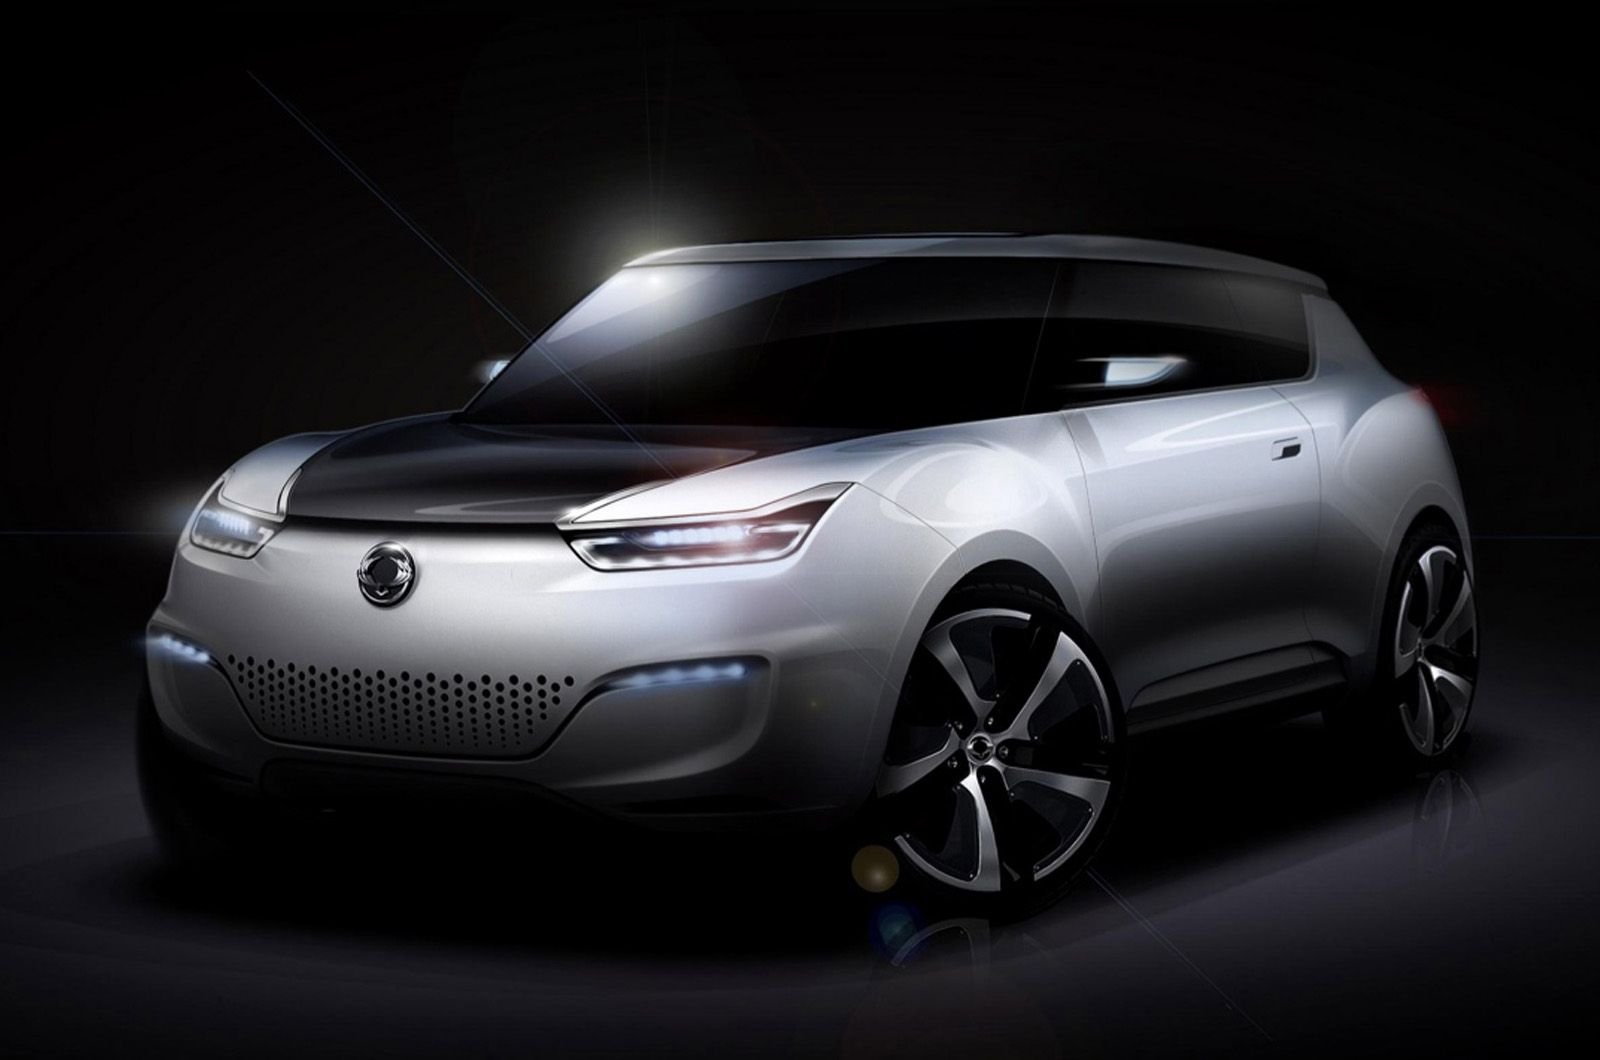 SsangYong e-XIV electric car concept